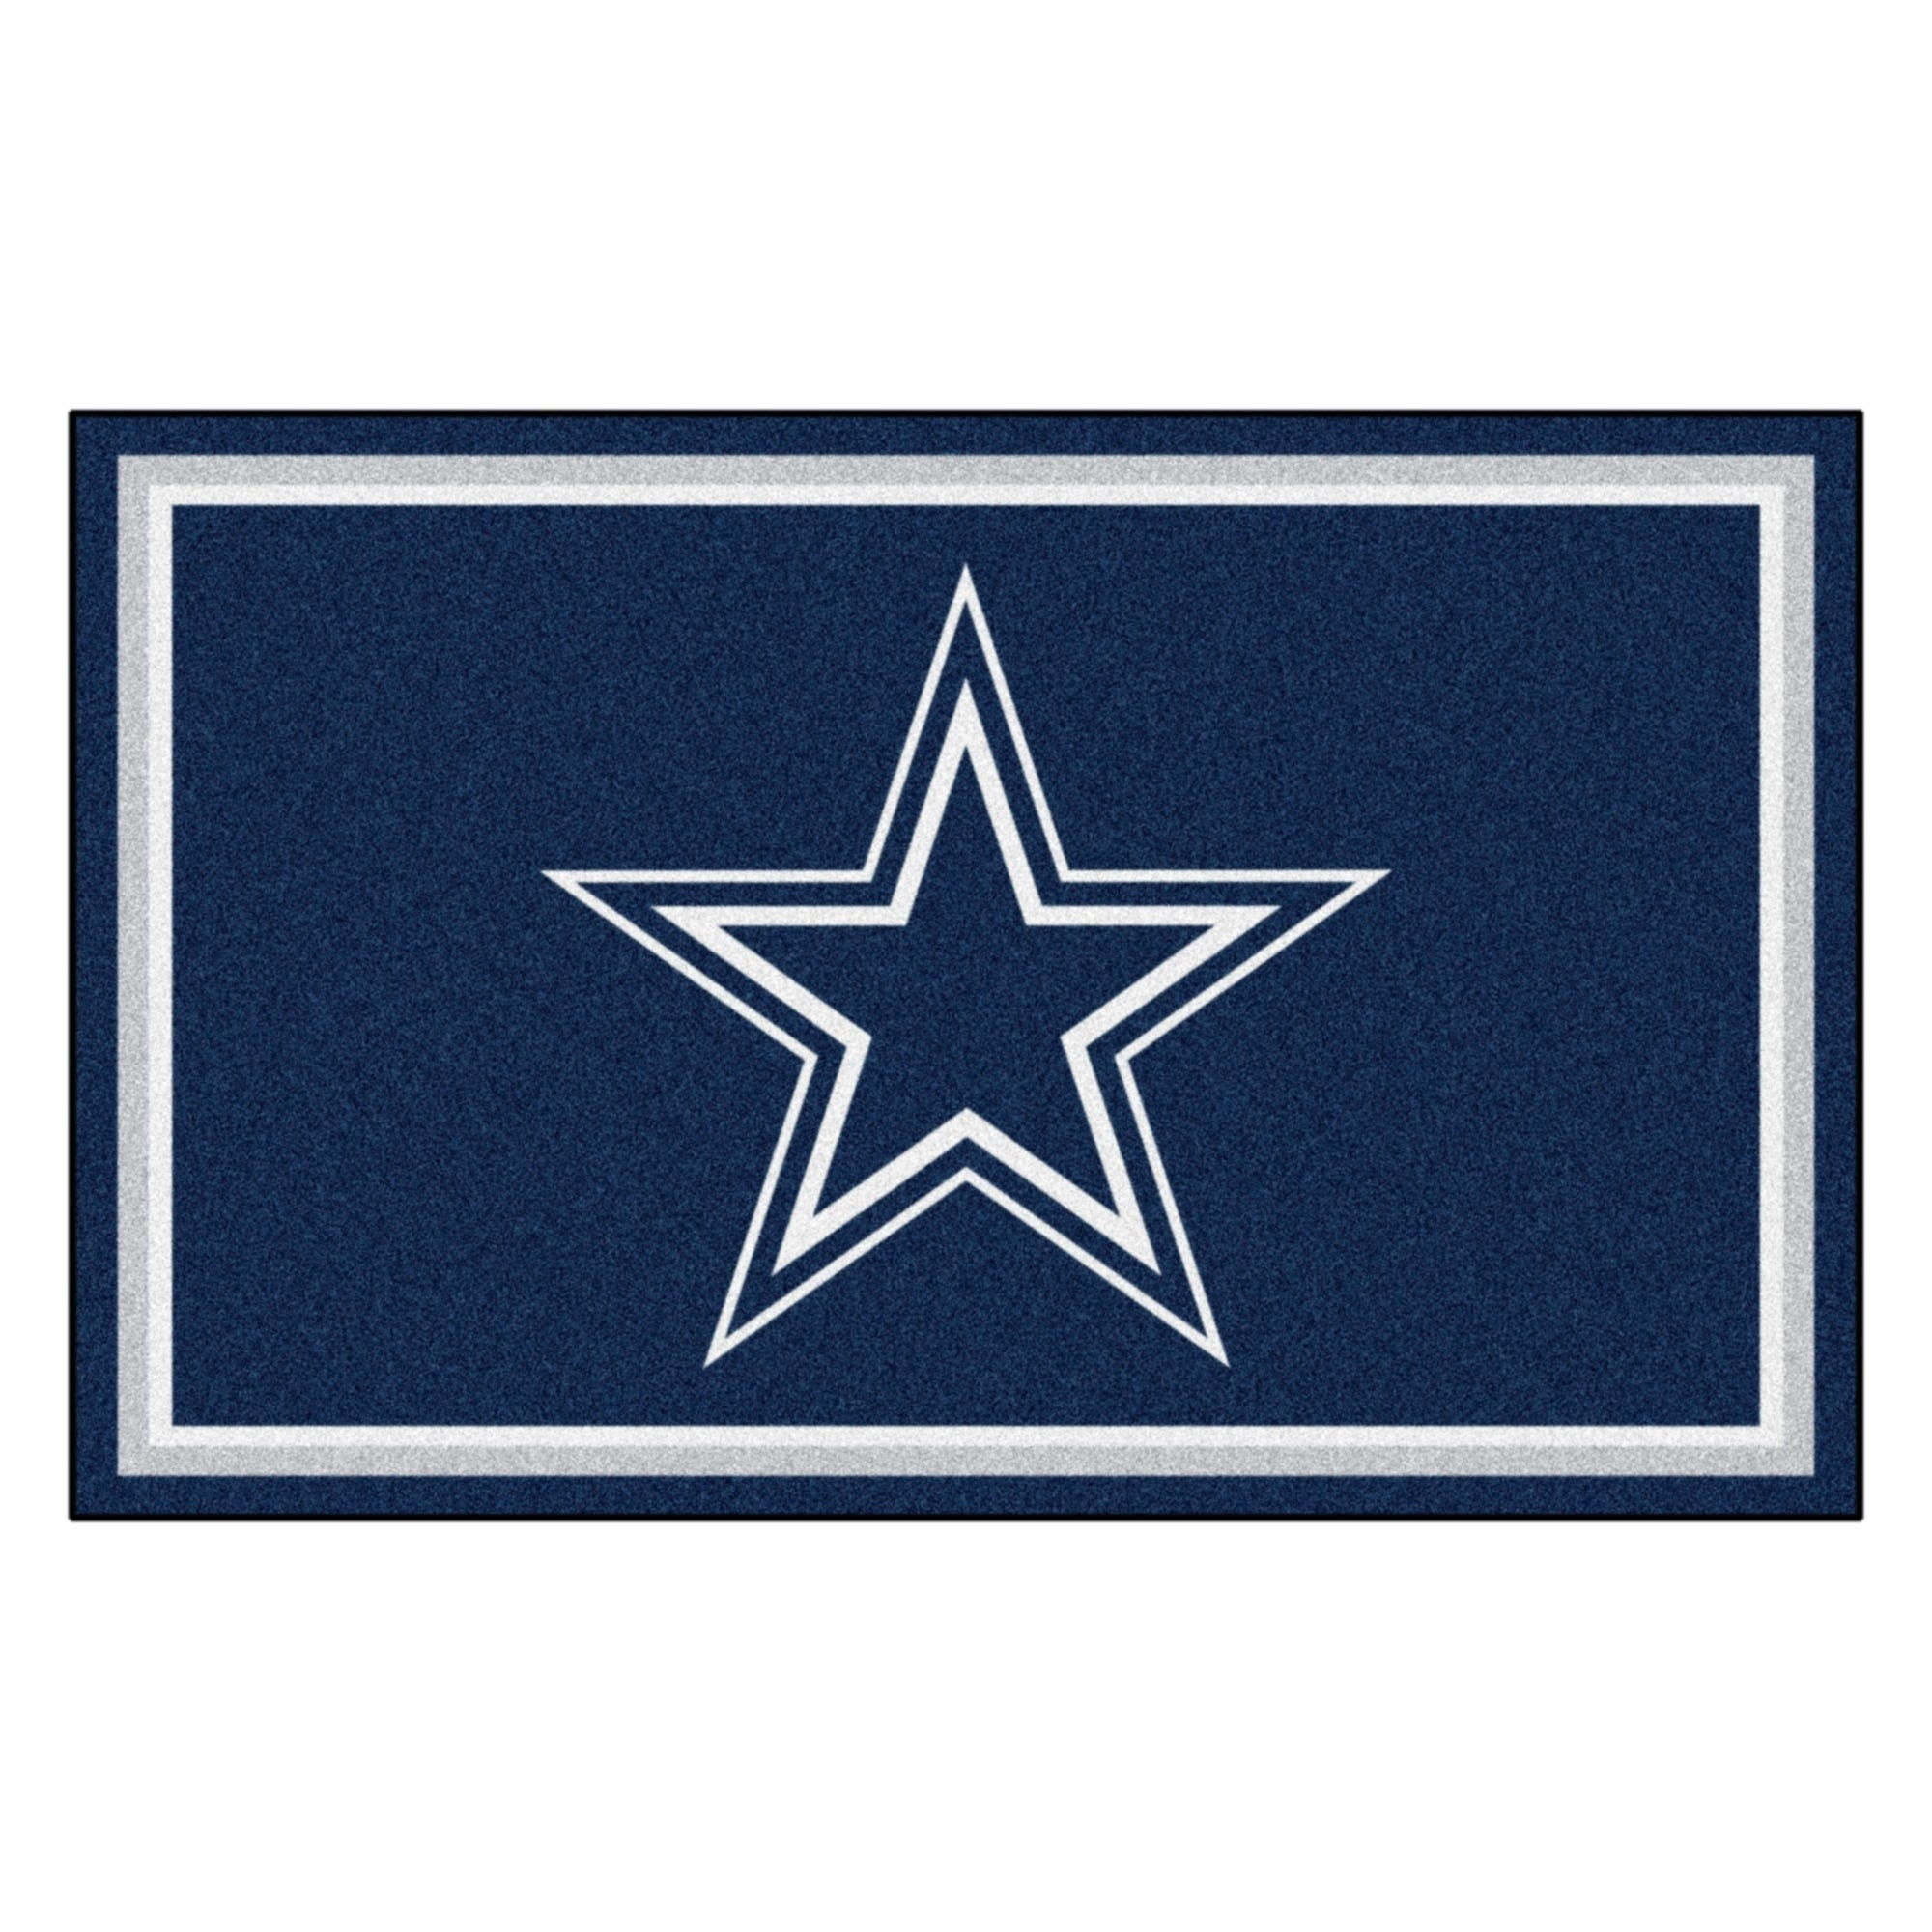 Fan Mats Dallas Cowboys Blue Nylon Area Rug (4' x 6') (48...